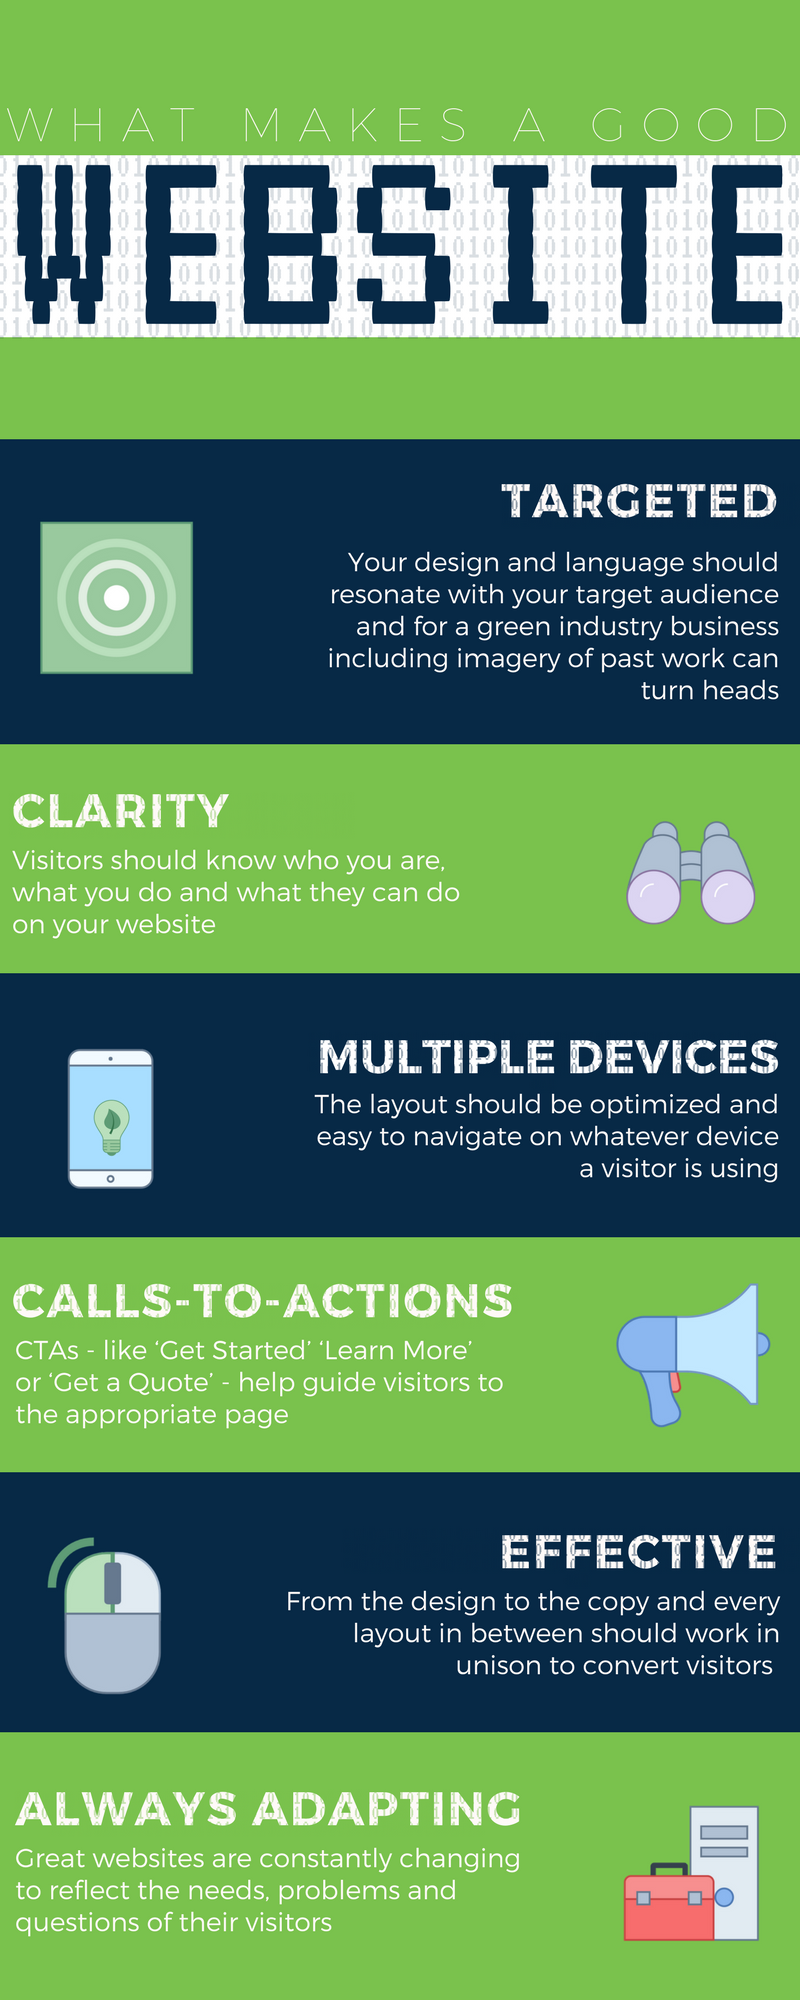 What makes a good green industry business website.png